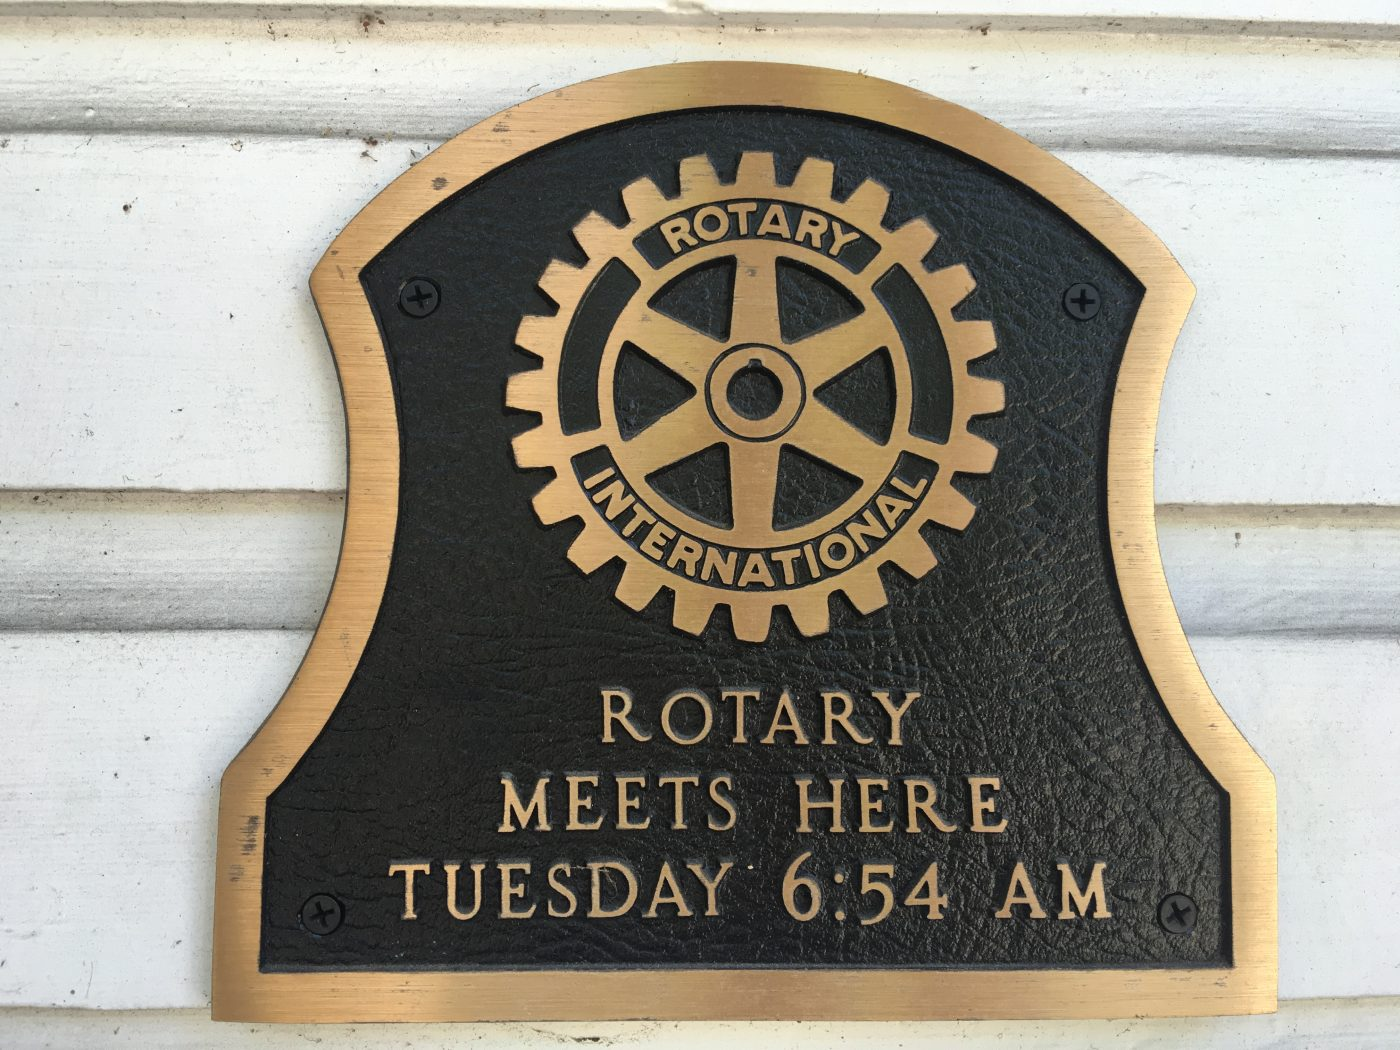 Windermere Rotary Plaque